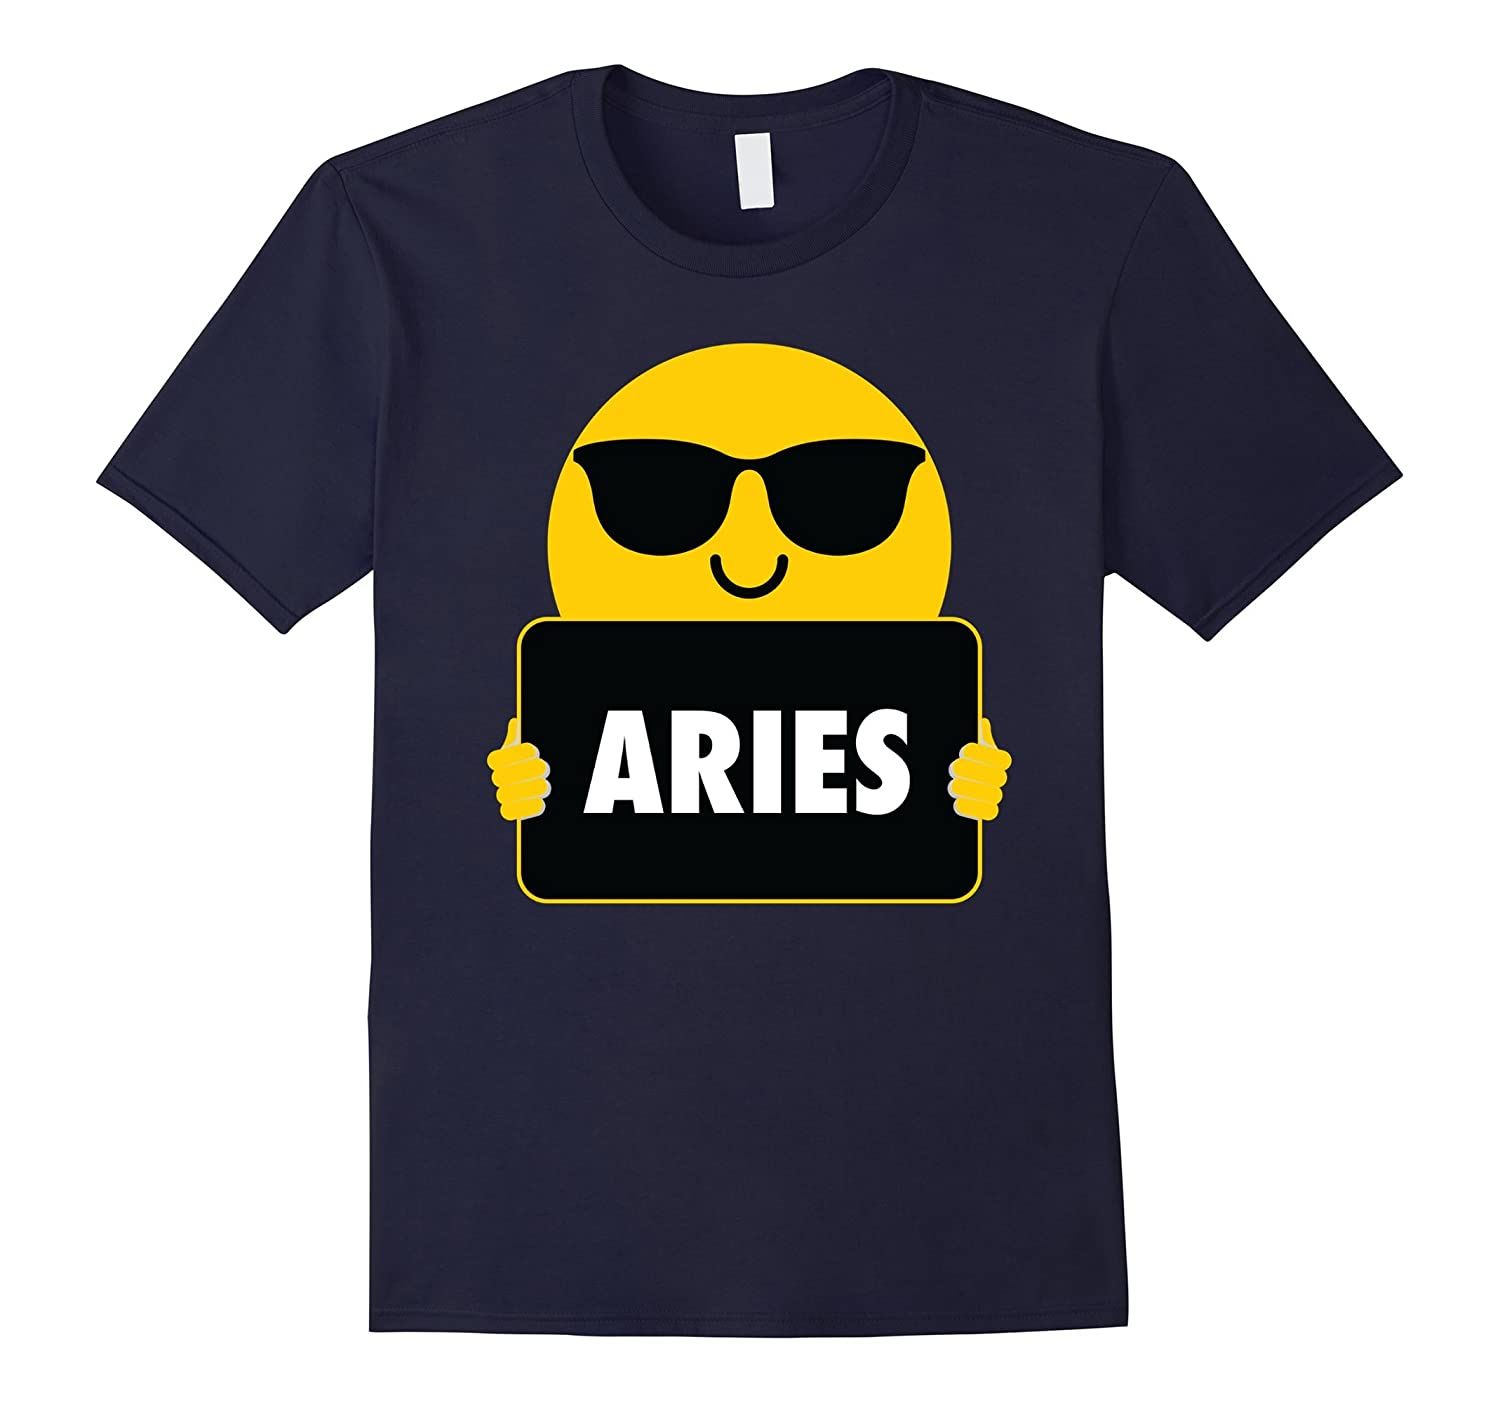 Aries Emoji Sunglasses Shirt T-Shirt Horoscope Tee-FL